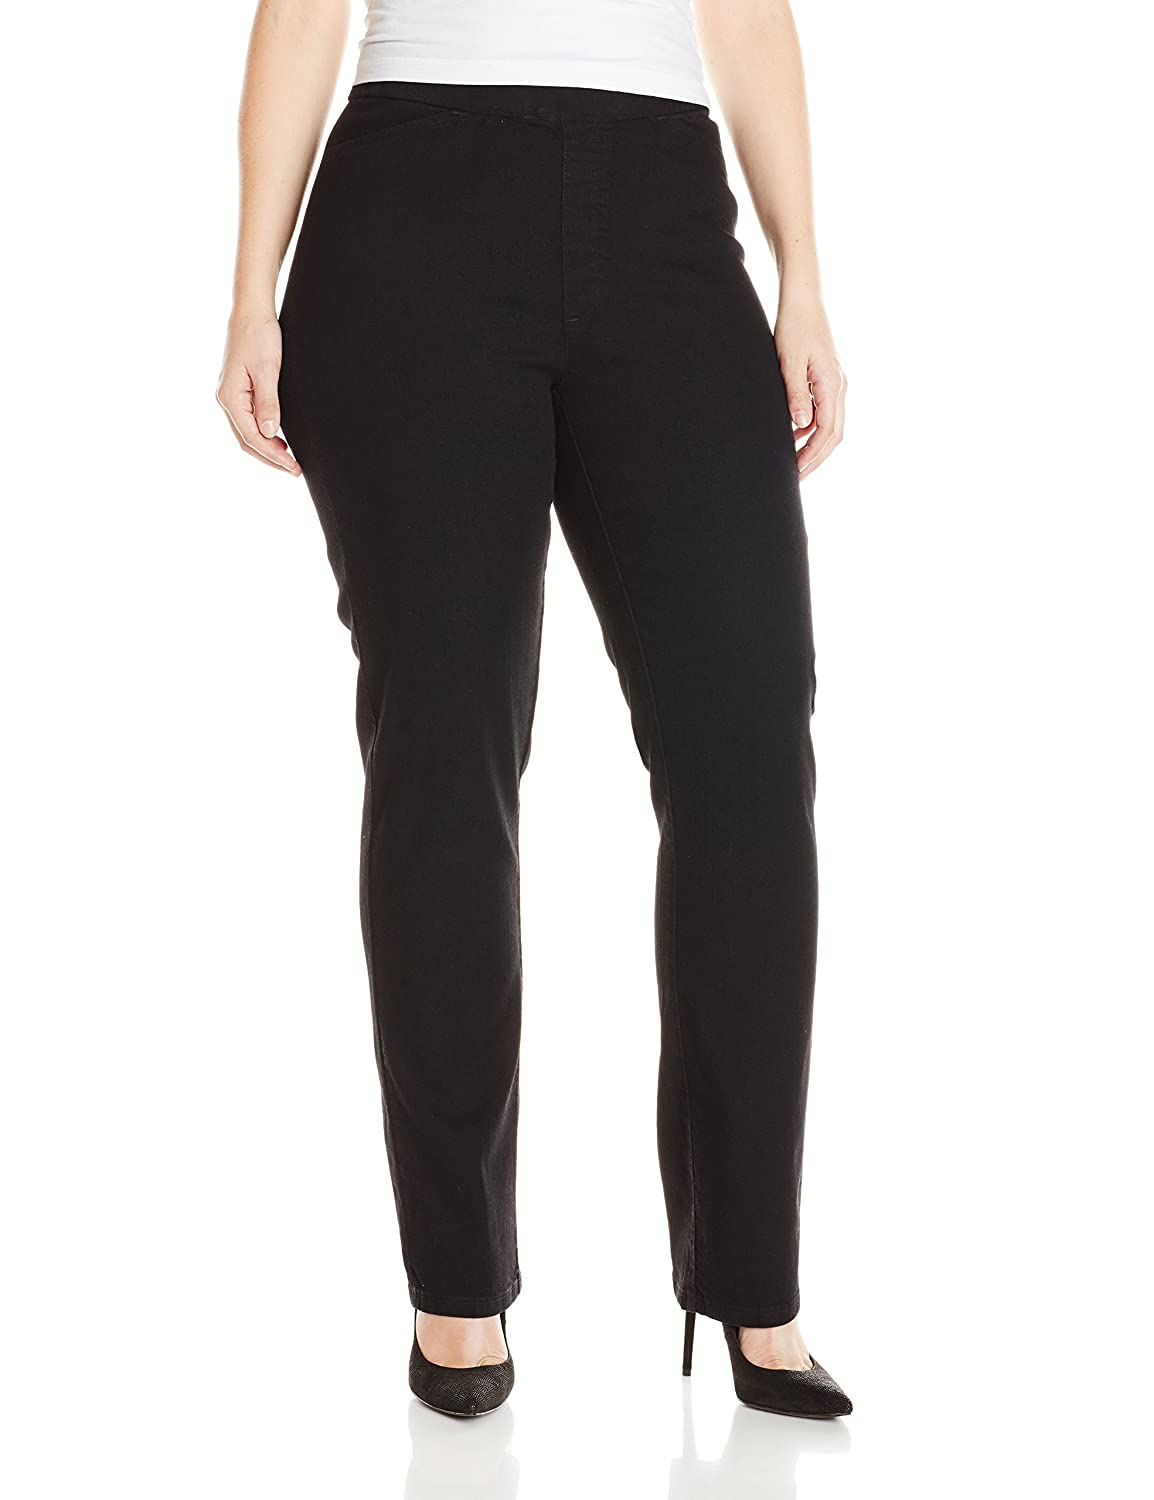 eefd78496303e Chic Classic Collection Women s Plus Size Easy Fit Elastic Waist Pull On  Pant at Amazon Women s Clothing store